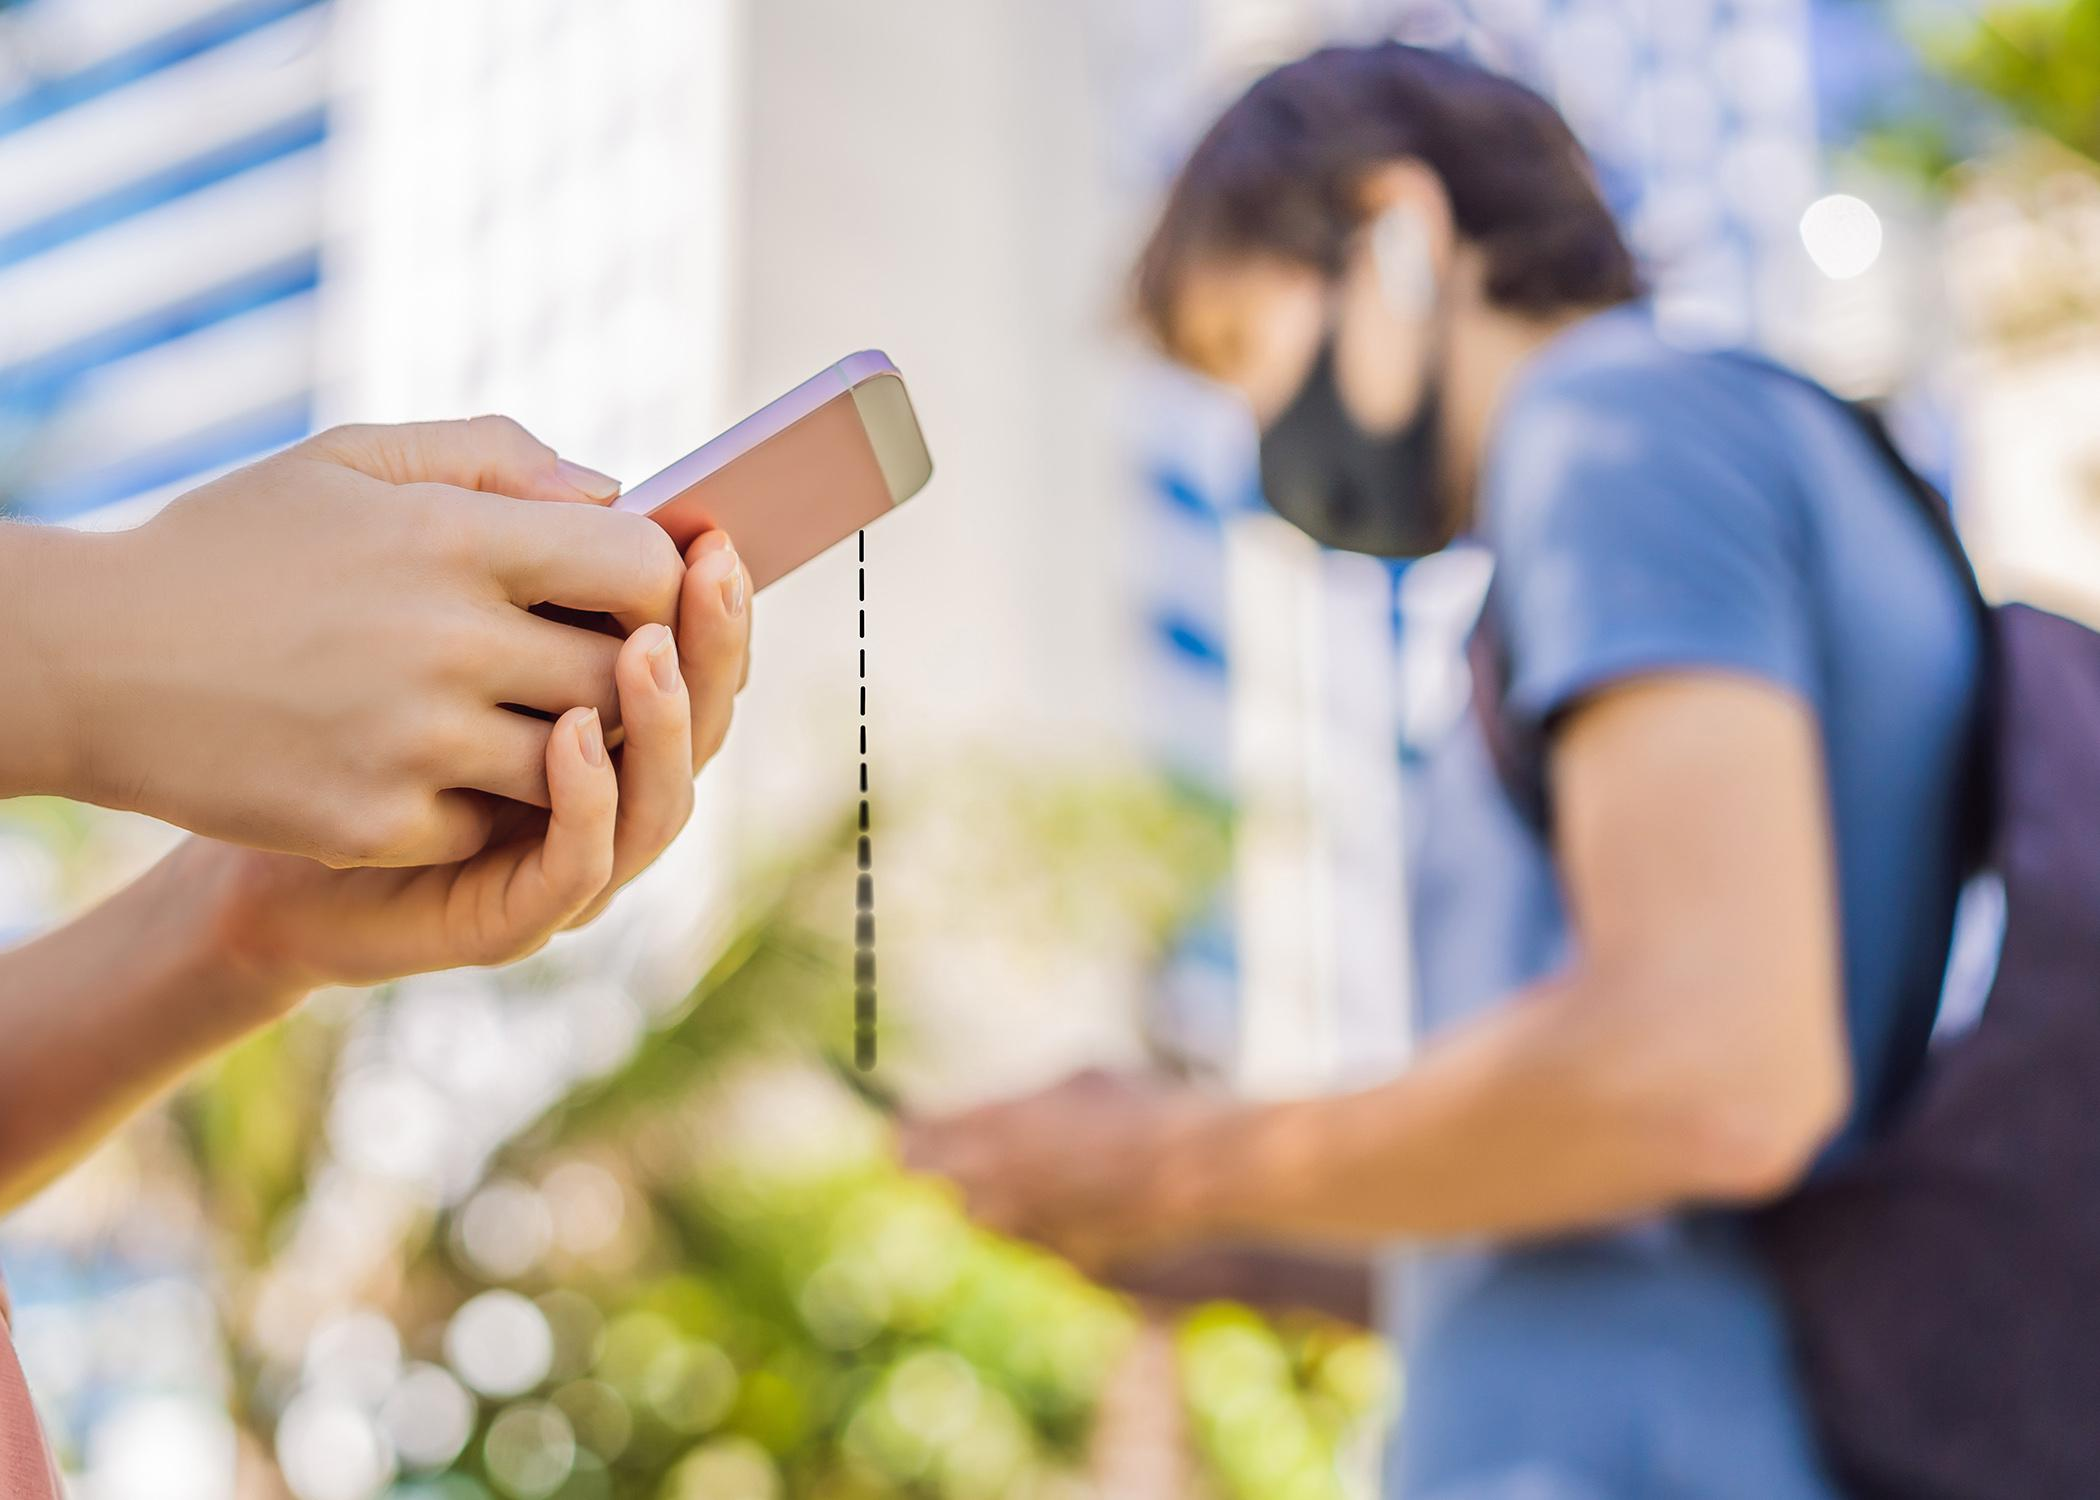 People wearing face masks holding cell phones